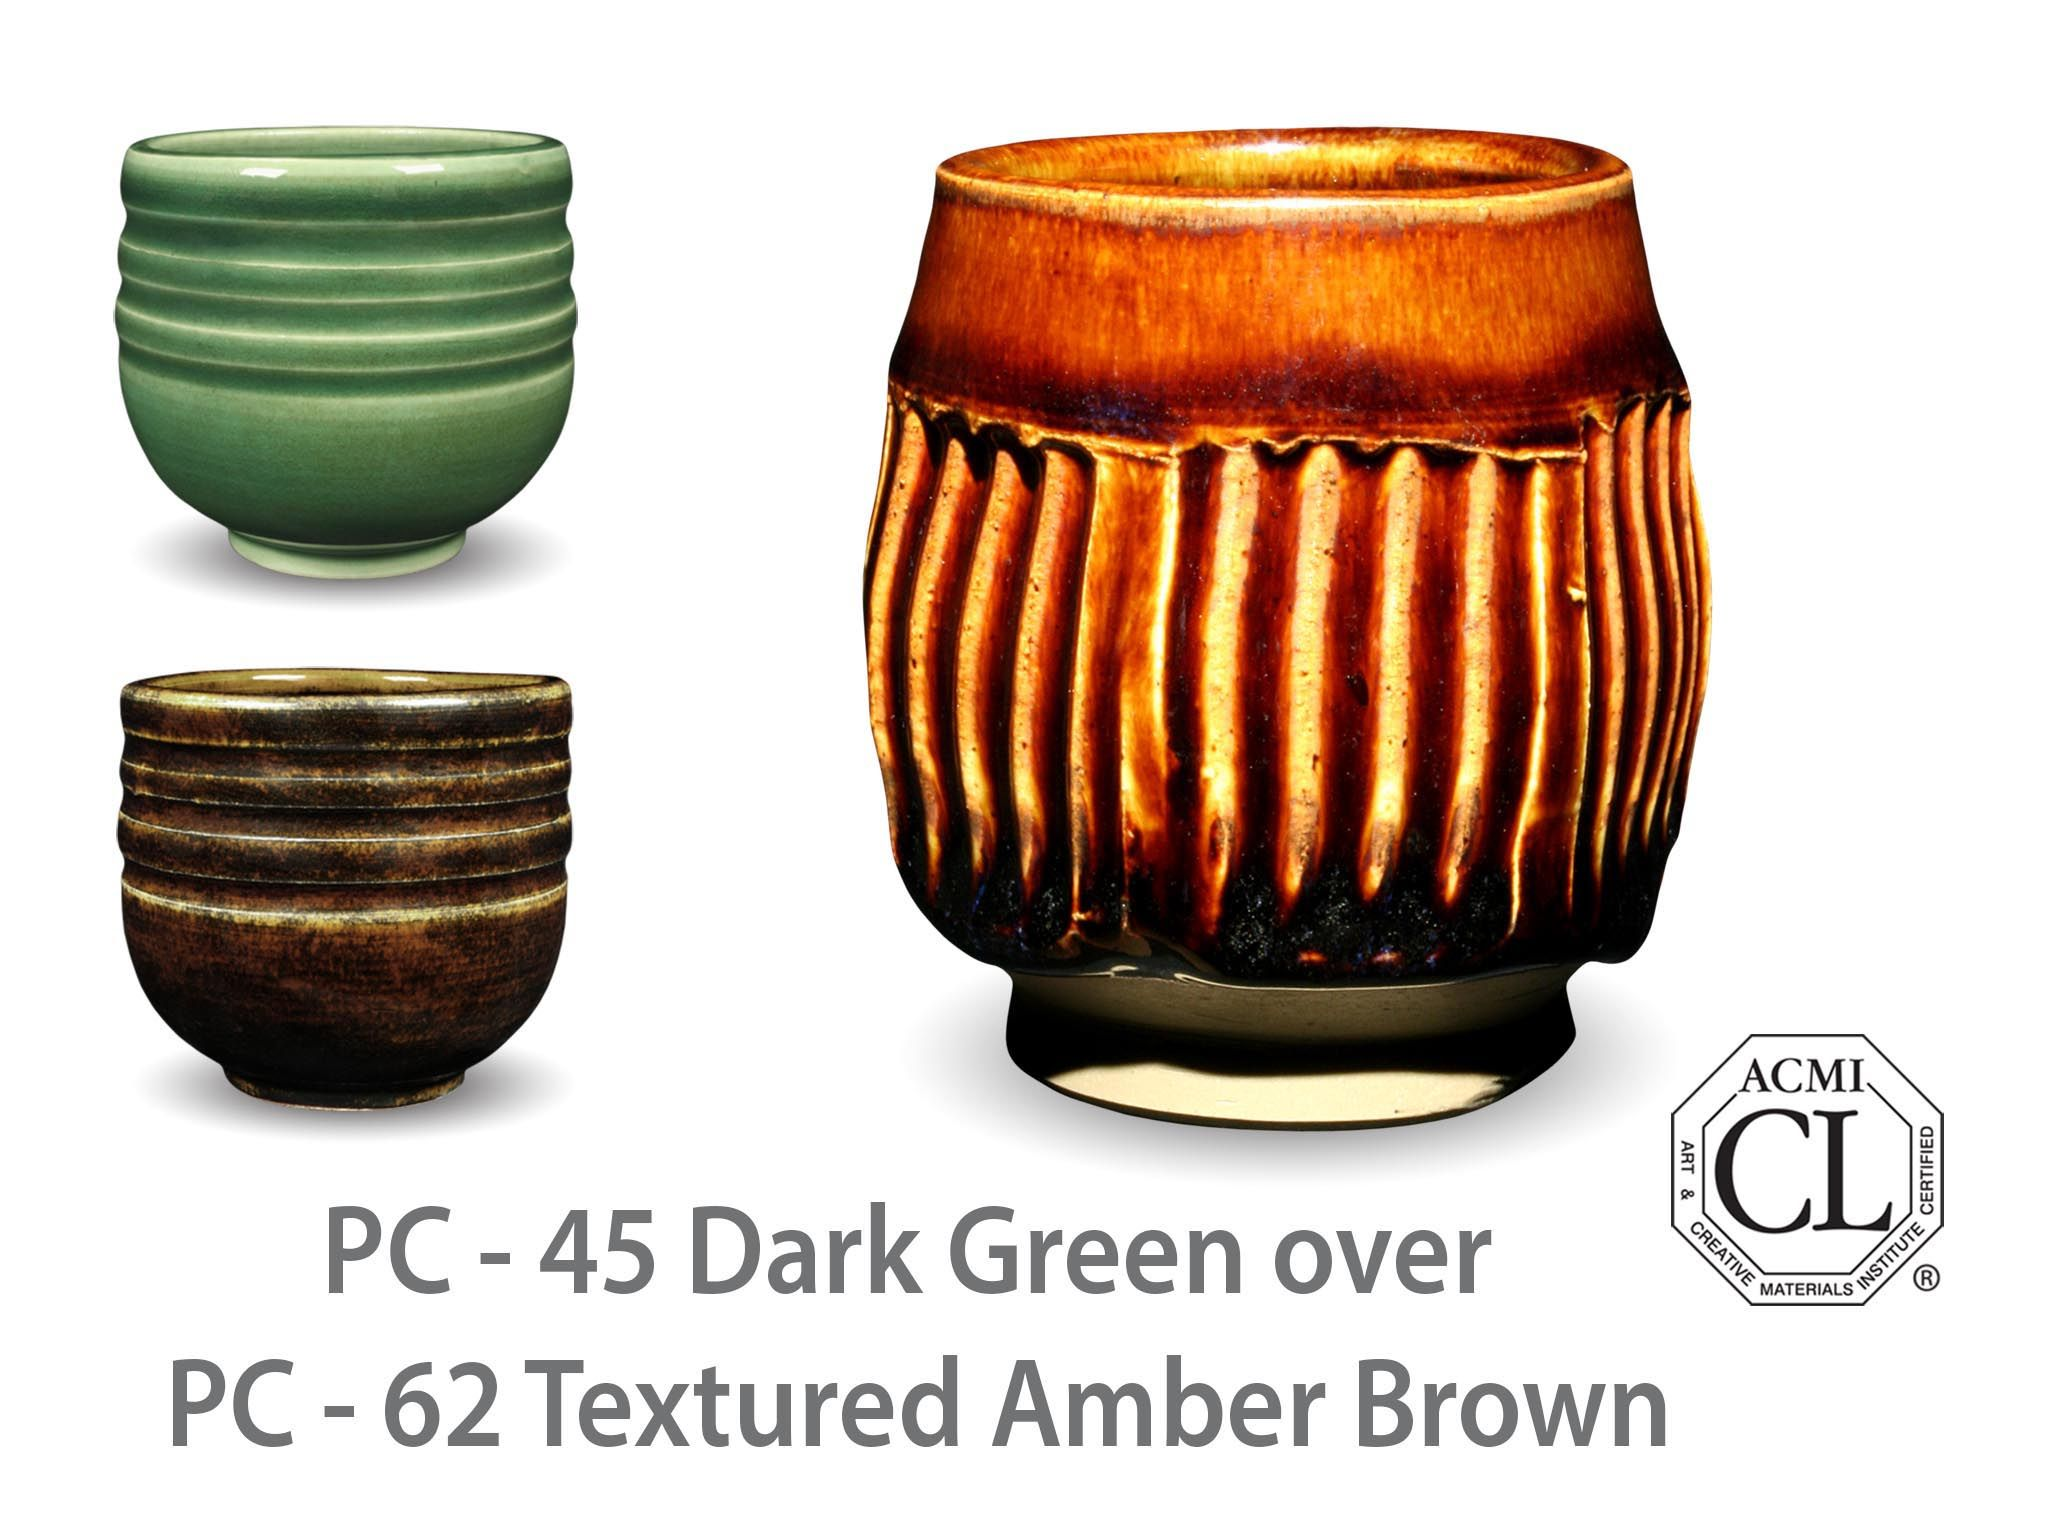 AMACO Potter's Choice layered glazes PC-62 Textured Amber Brown and PC-45 Dark Green.